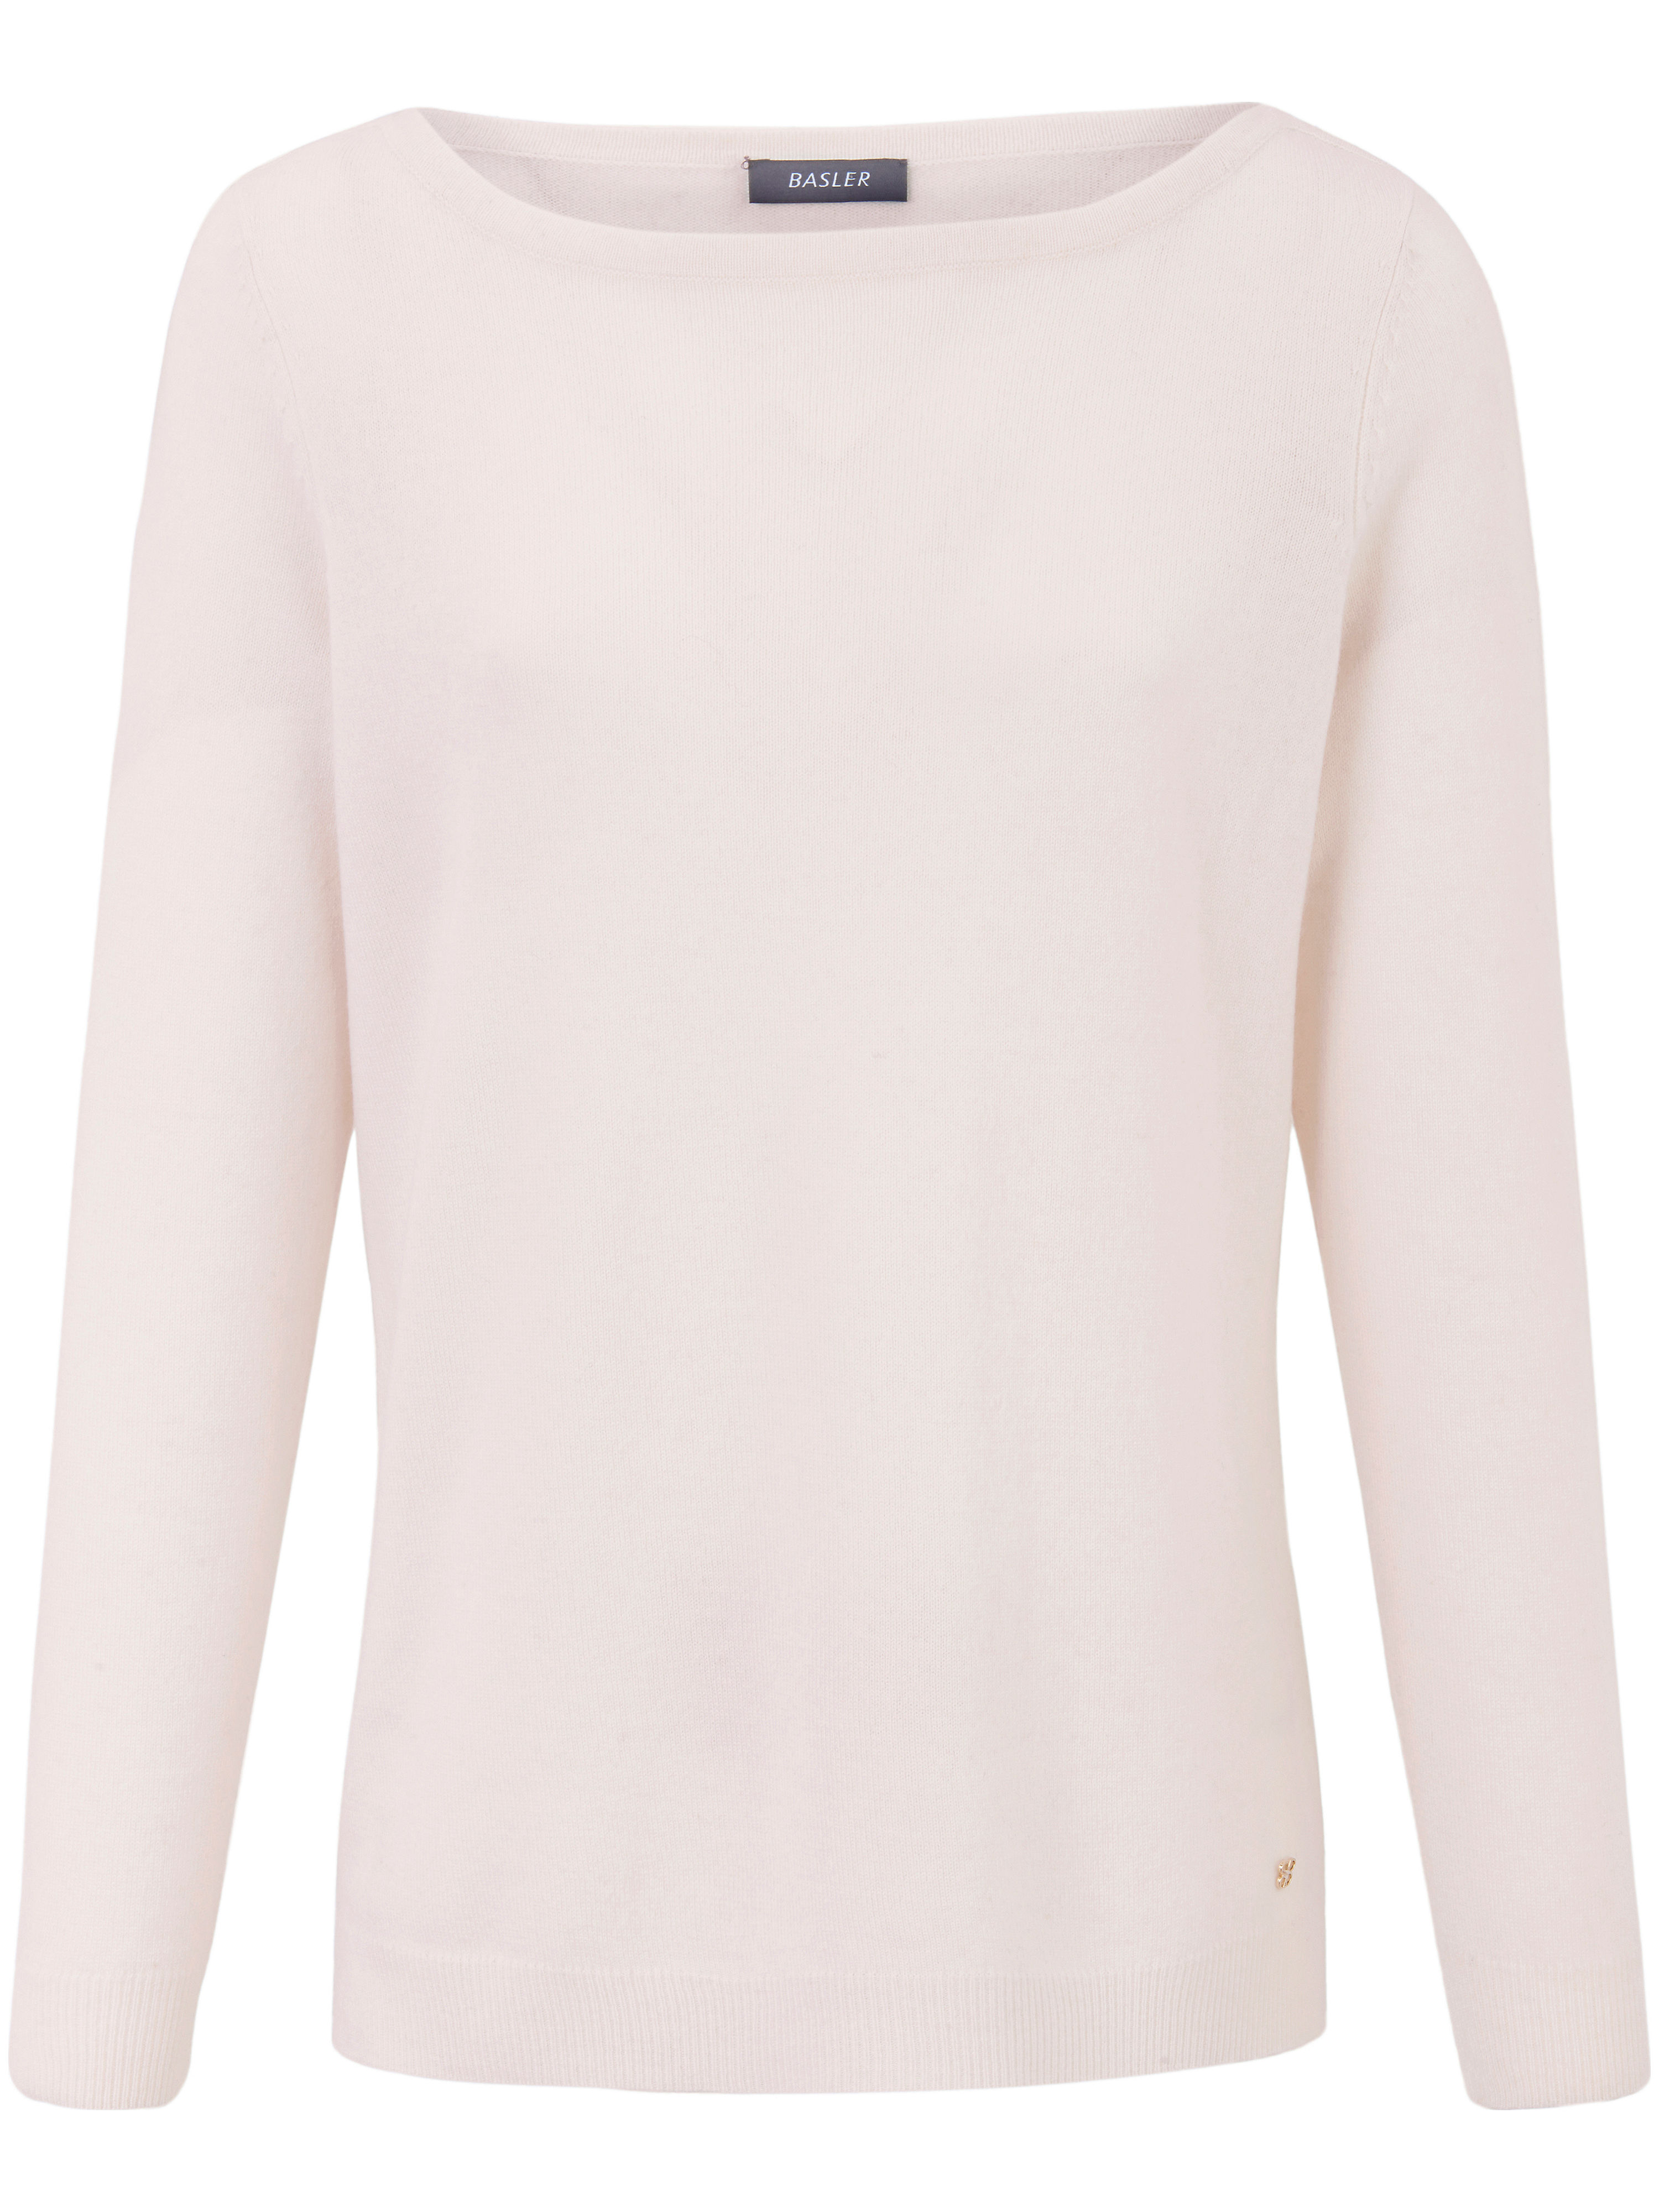 Le pull 100% cachemire  Basler blanc taille 44